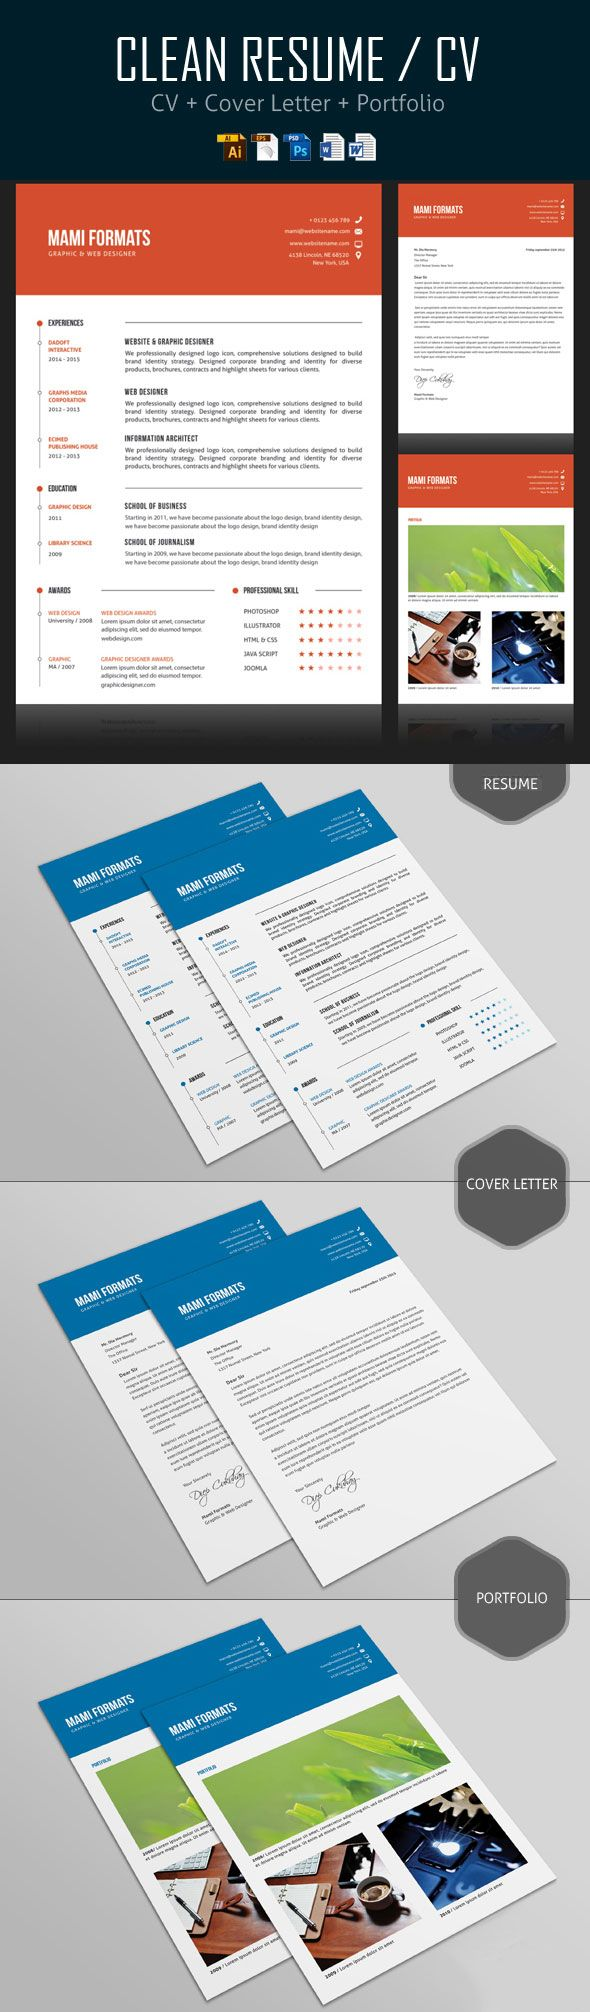 Simple CVResume  Cover Letter Design